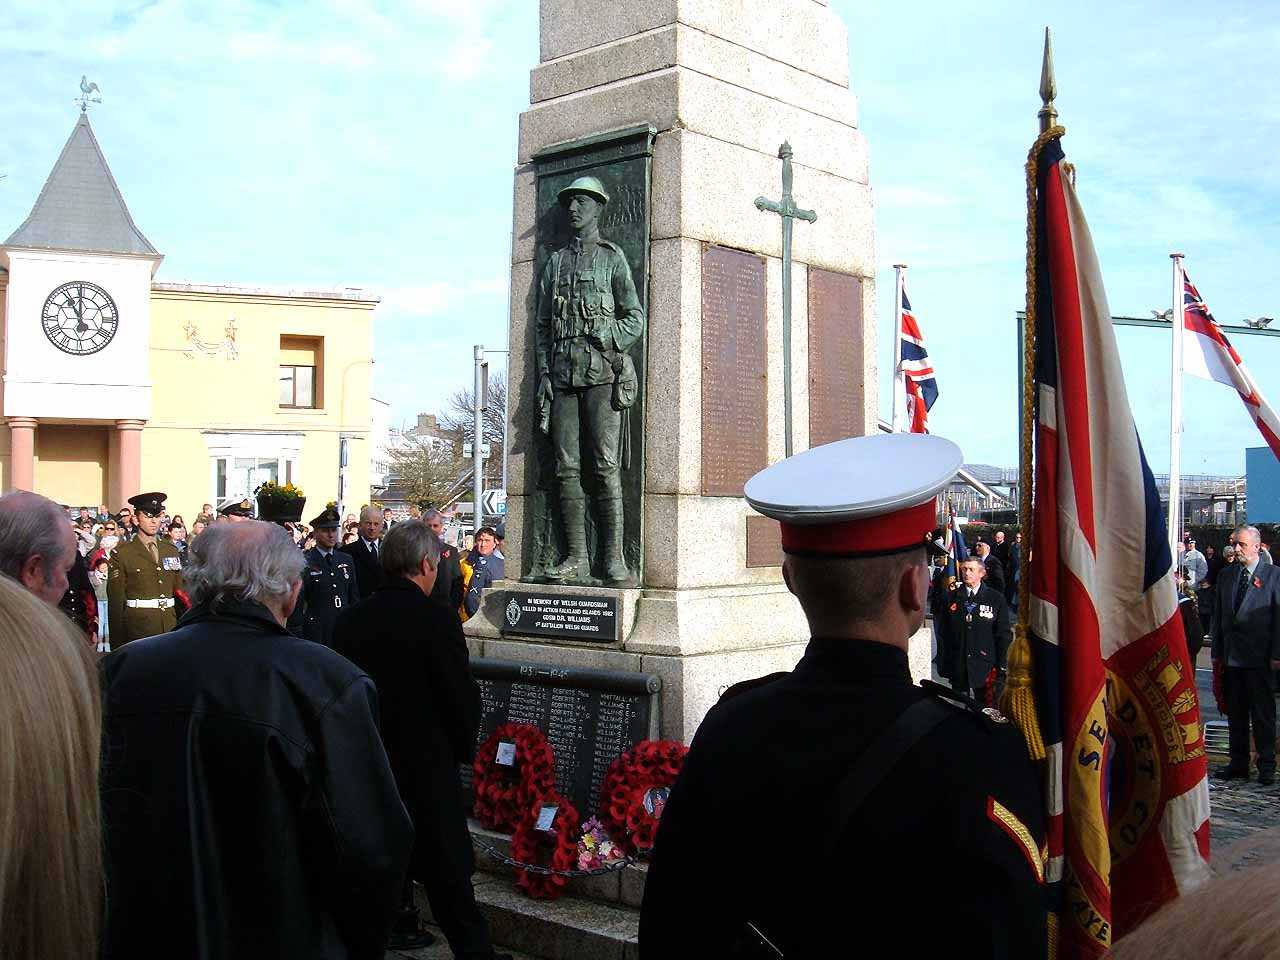 Anglesey, Holyhead, Remembrance Sunday 2006 - Uniformed Men observe 3 minutes silence